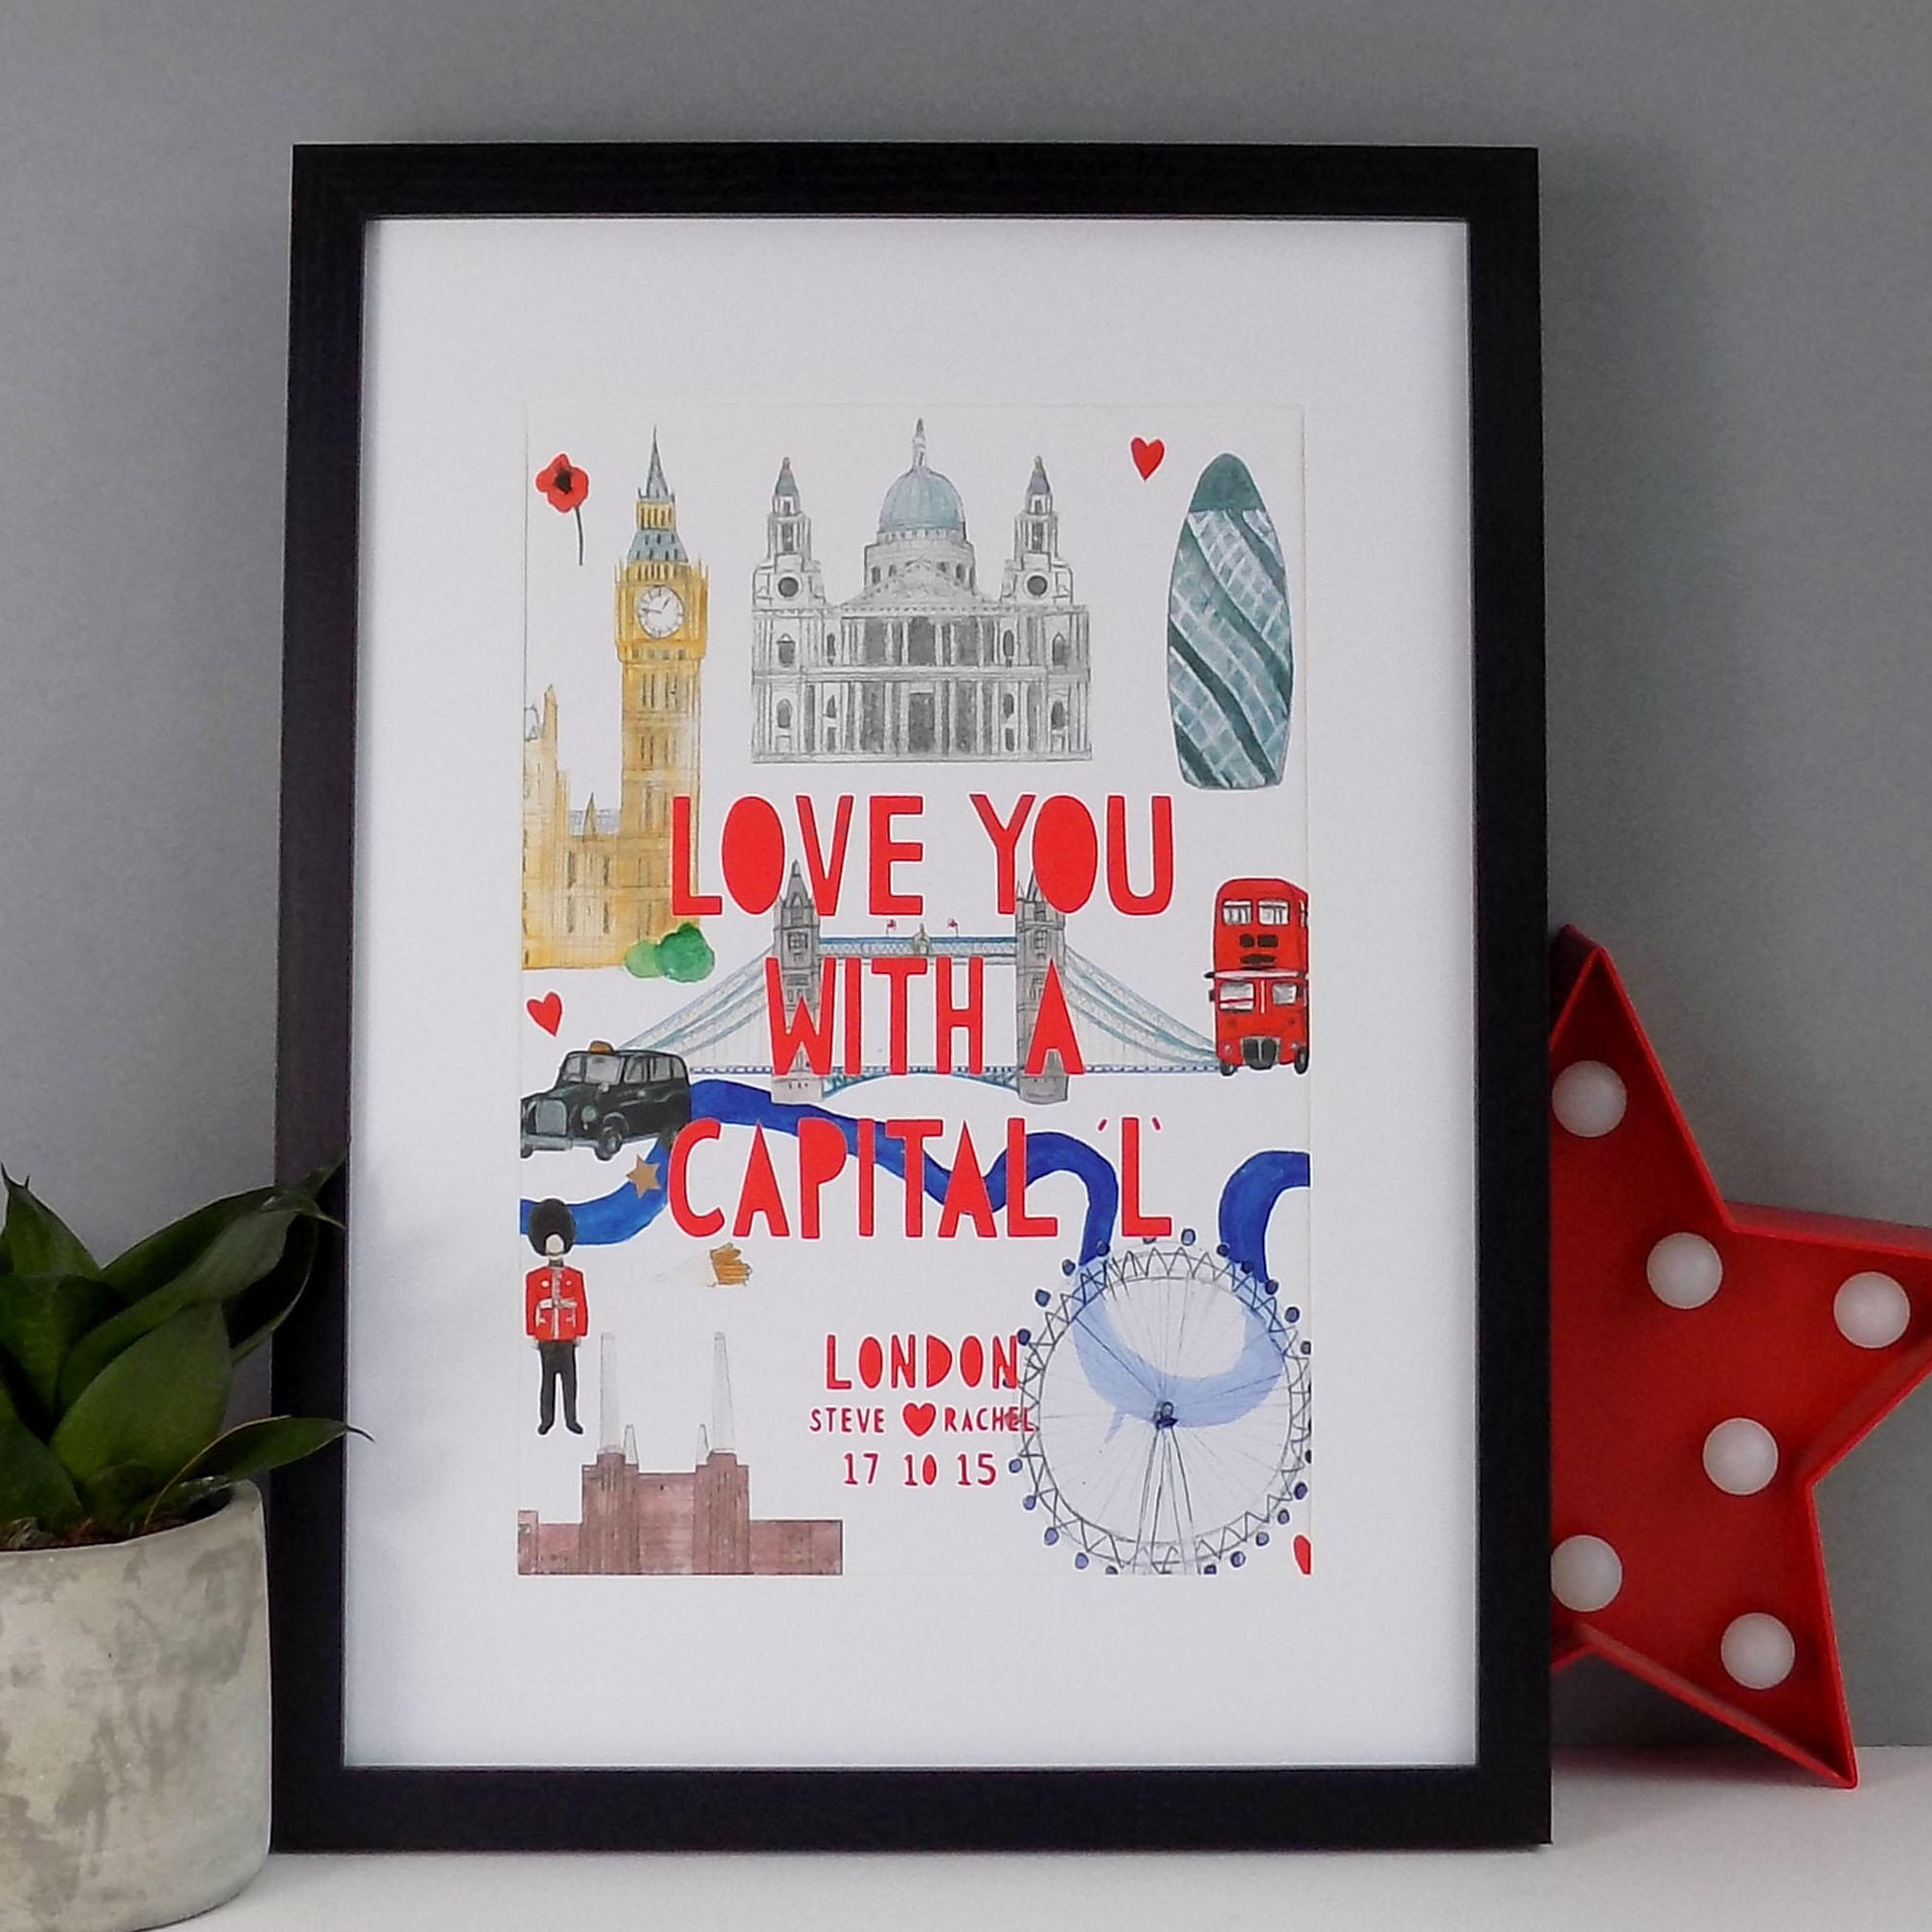 Illustrated Watercolour London landmarks with a bright red papercut typographic text which says 'Love you with a capital L' and customised to the names of a couple and a special date.